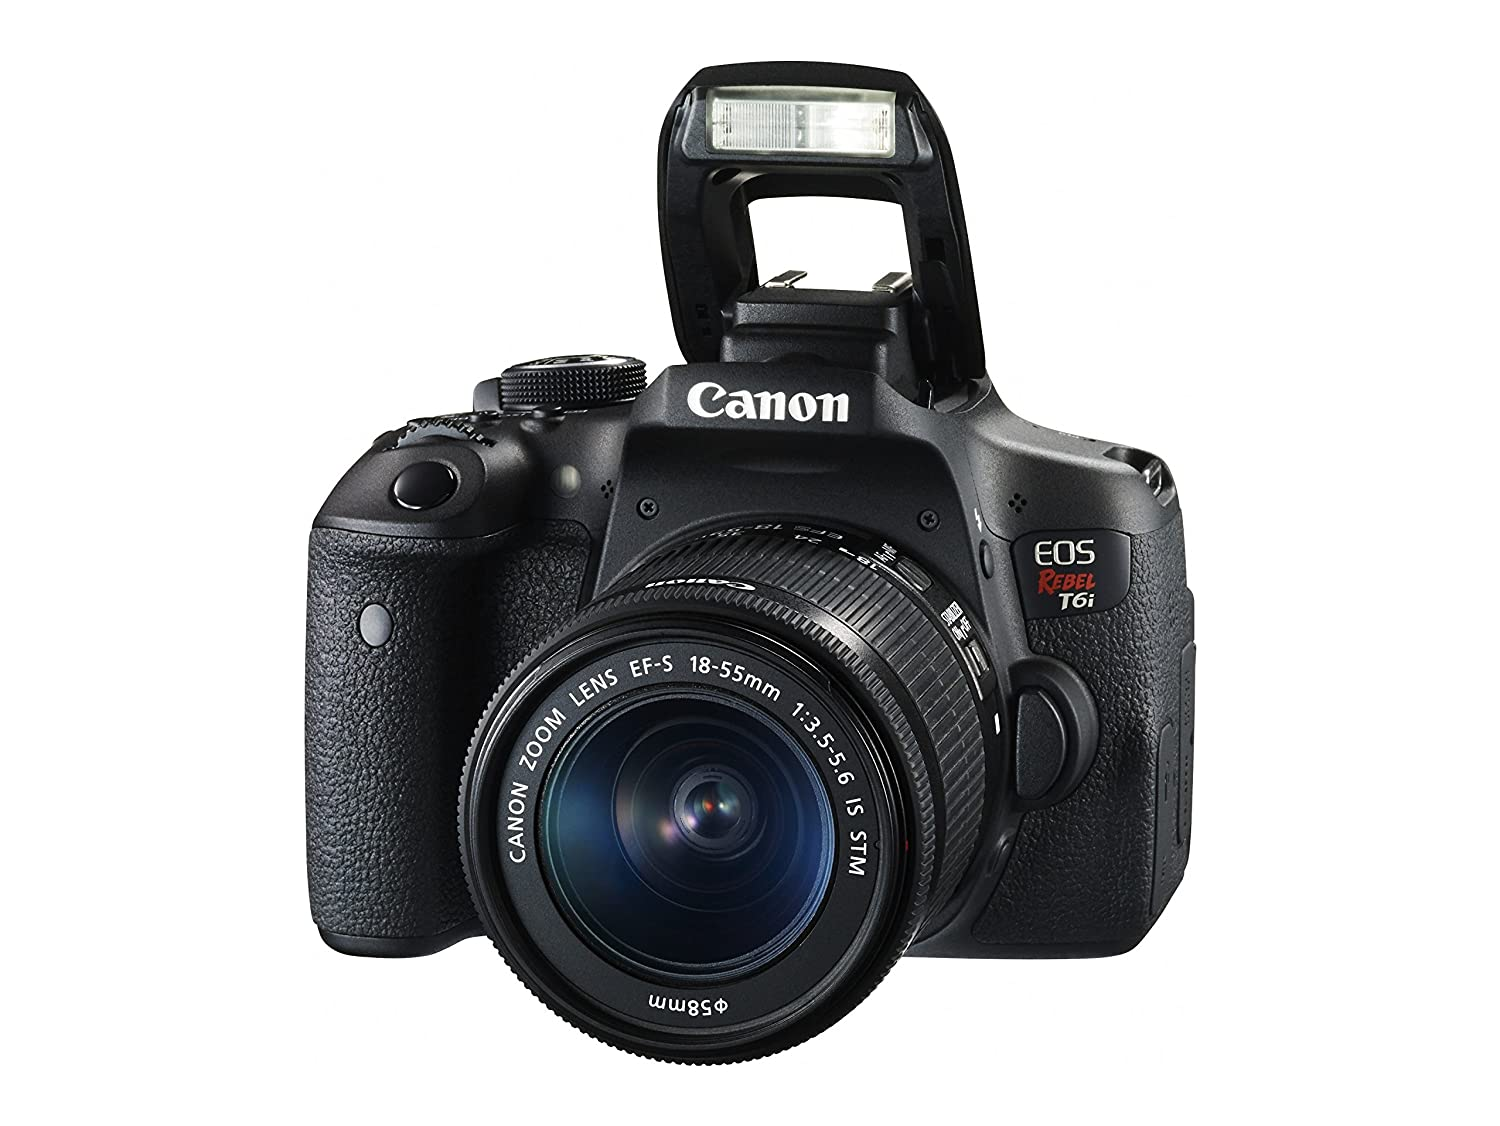 Amazon.com : Canon EOS Rebel T6i Digital SLR with EF-S 18-55mm IS STM Lens - Wi-Fi Enabled